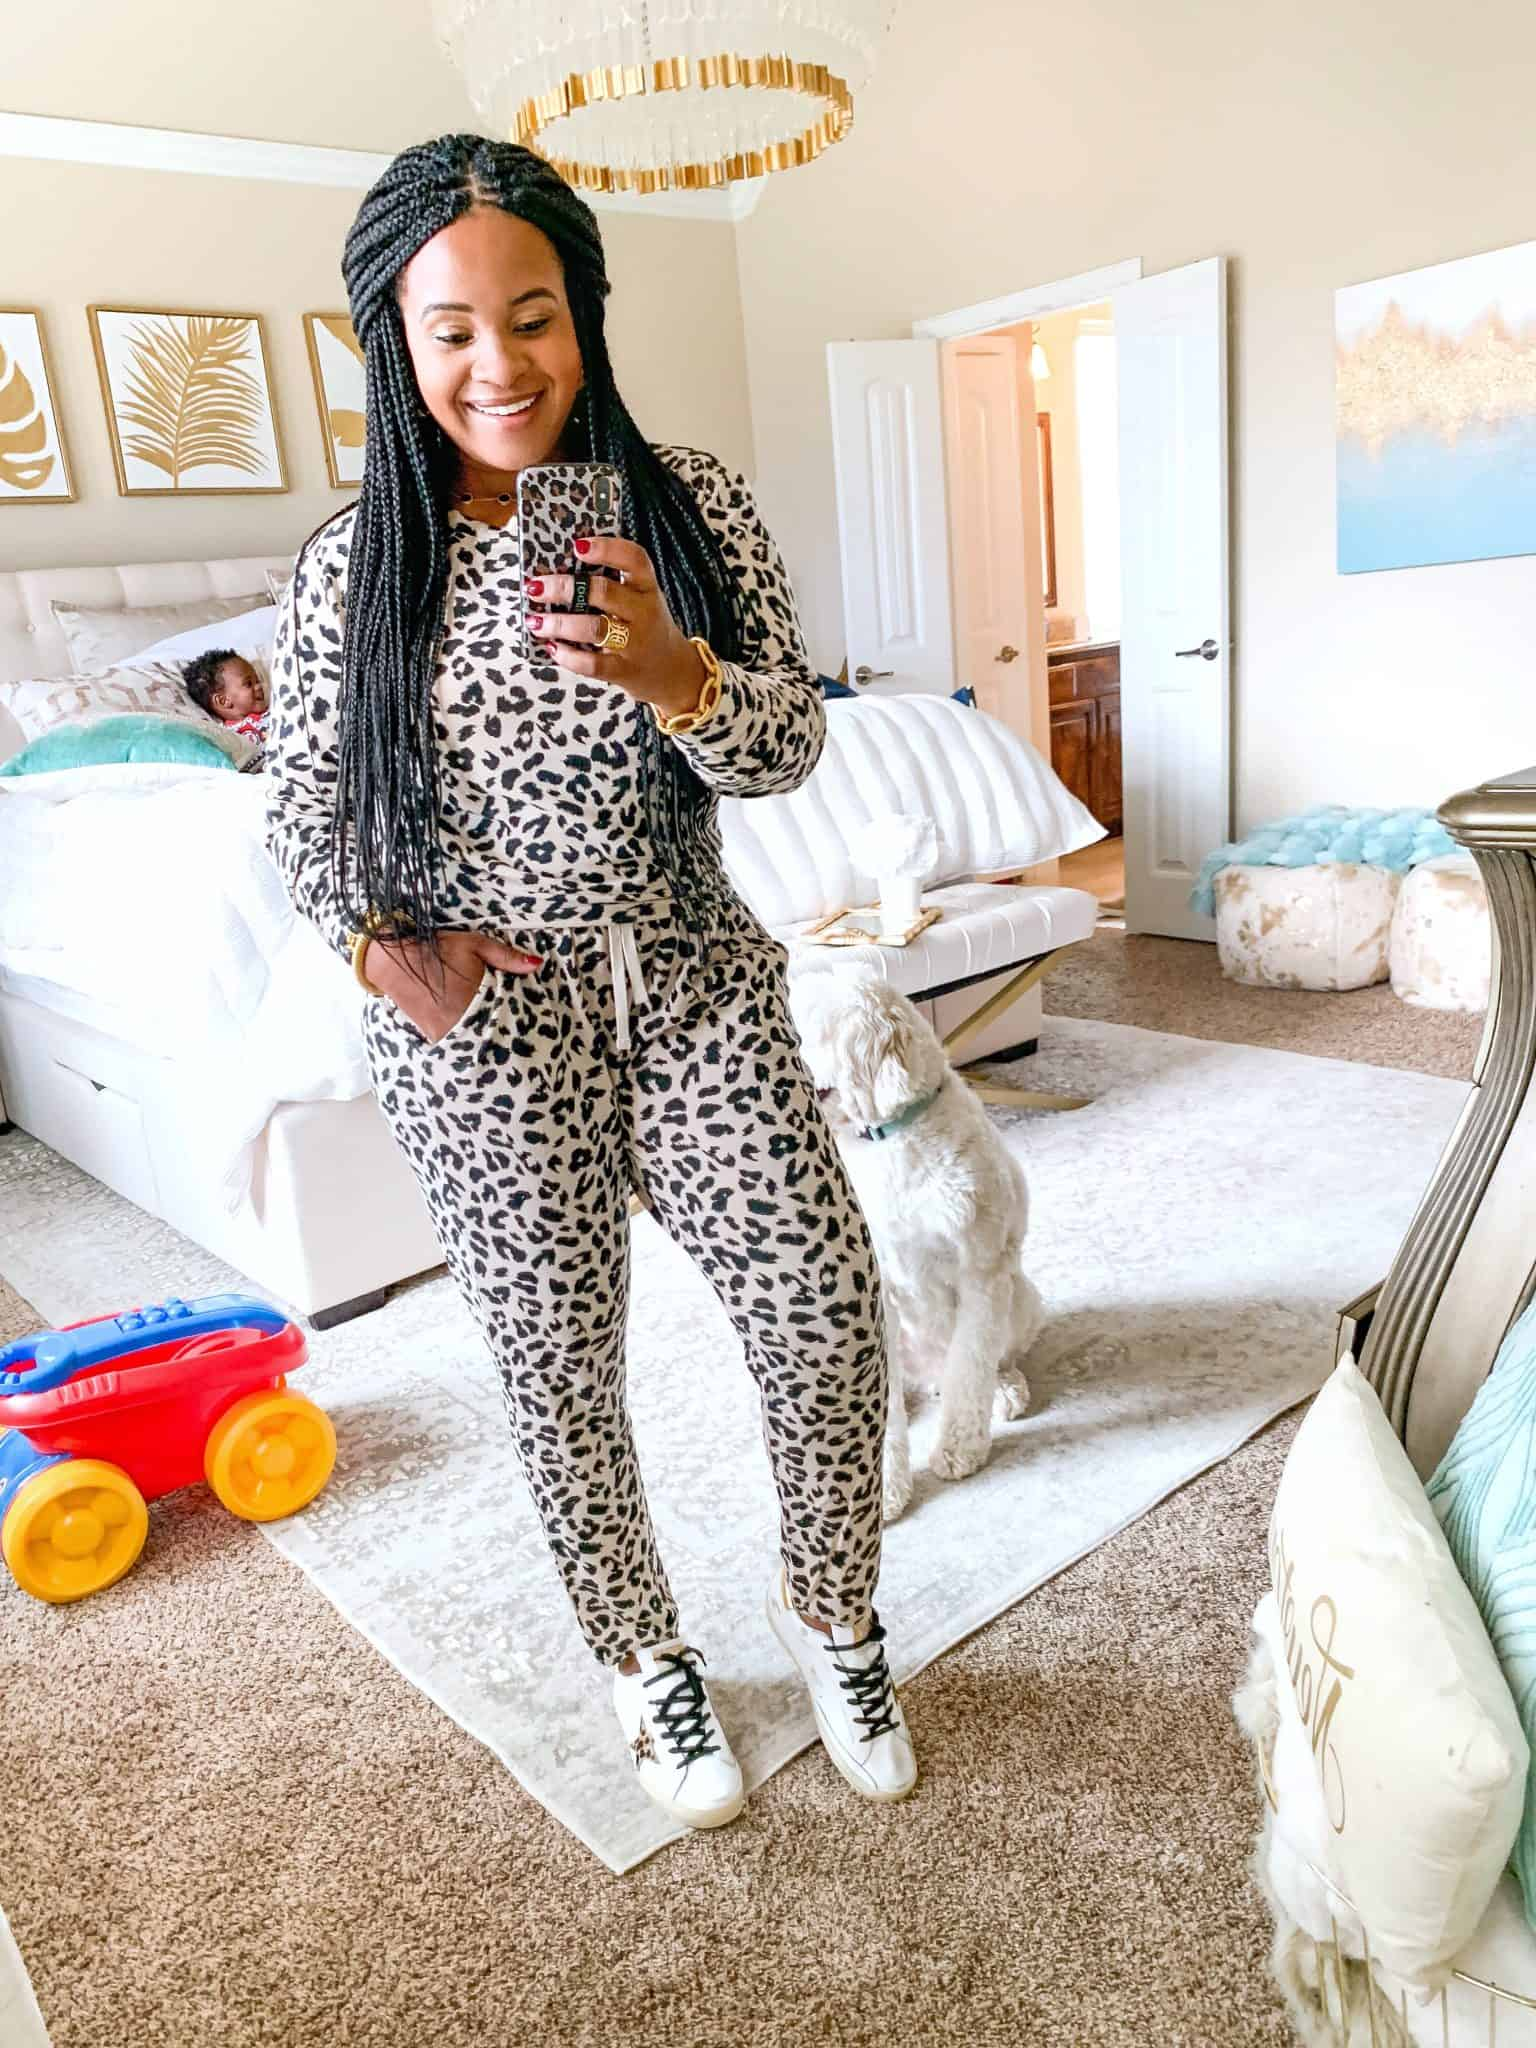 Red Dress Boutique Try On Fall 2019 by popular US fashion blog, Glamorous Versatility: image of a woman wearing a Red Dress Boutique Wildly Popular Leopard Pullover BB DAKOTA and In With The Crowd Leopard Joggers BB DAKOTA.